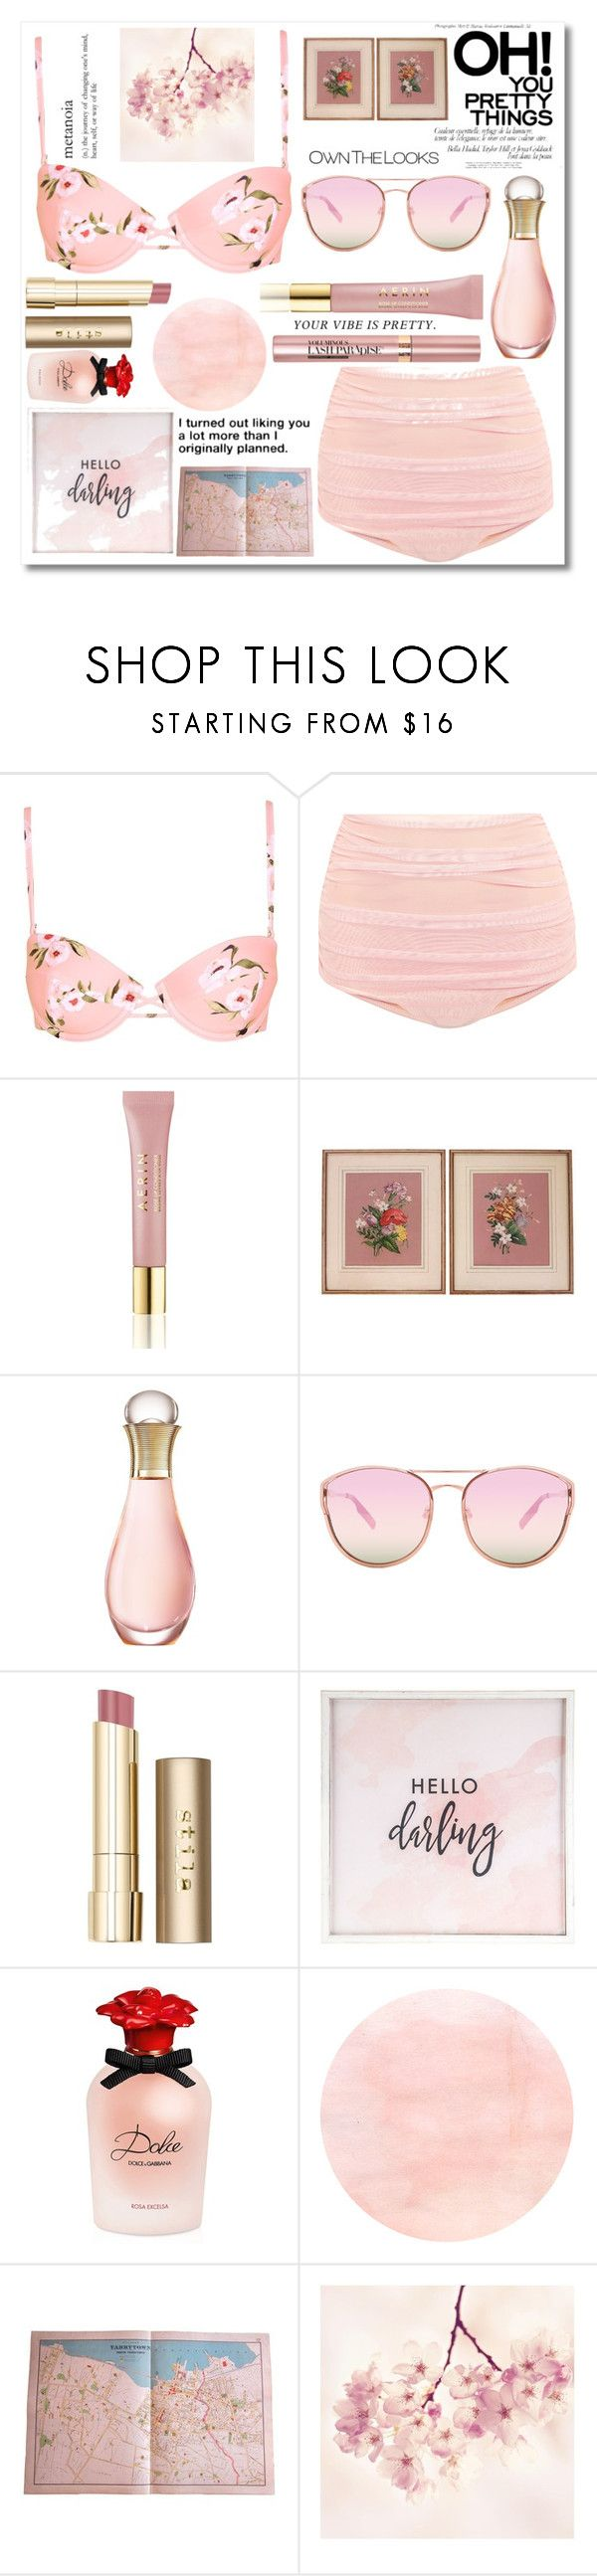 """""""Bathing Suit - Nude Pink"""" by rose-chan-needs-a-life ❤ liked on Polyvore featuring Topshop, Norma Kamali, AERIN, Christian Dior, L'Oréal Paris, Quay, Stila, Hello Darling, Dolce&Gabbana and Love Quotes Scarves"""